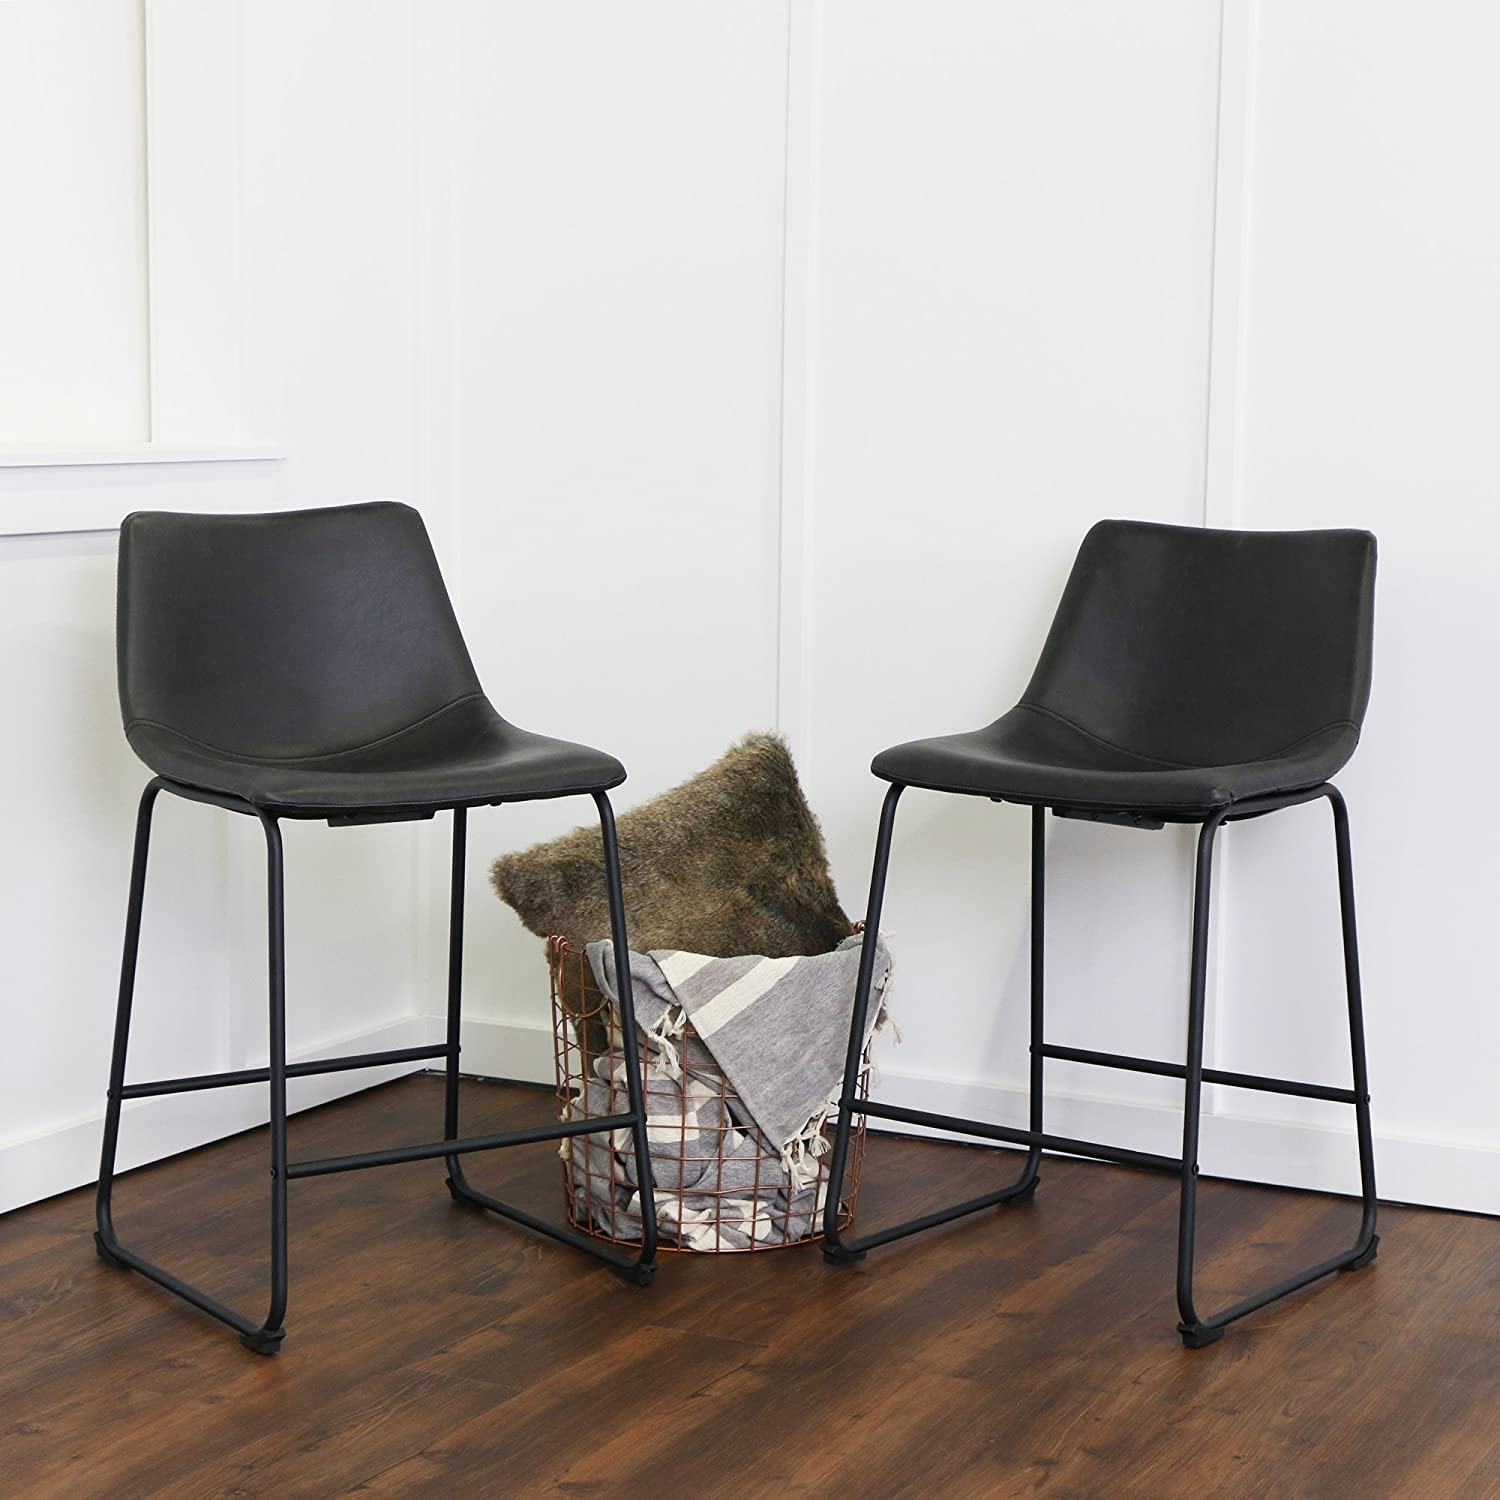 WE Furniture Black Faux Leather Counter Chairs, Set of 2